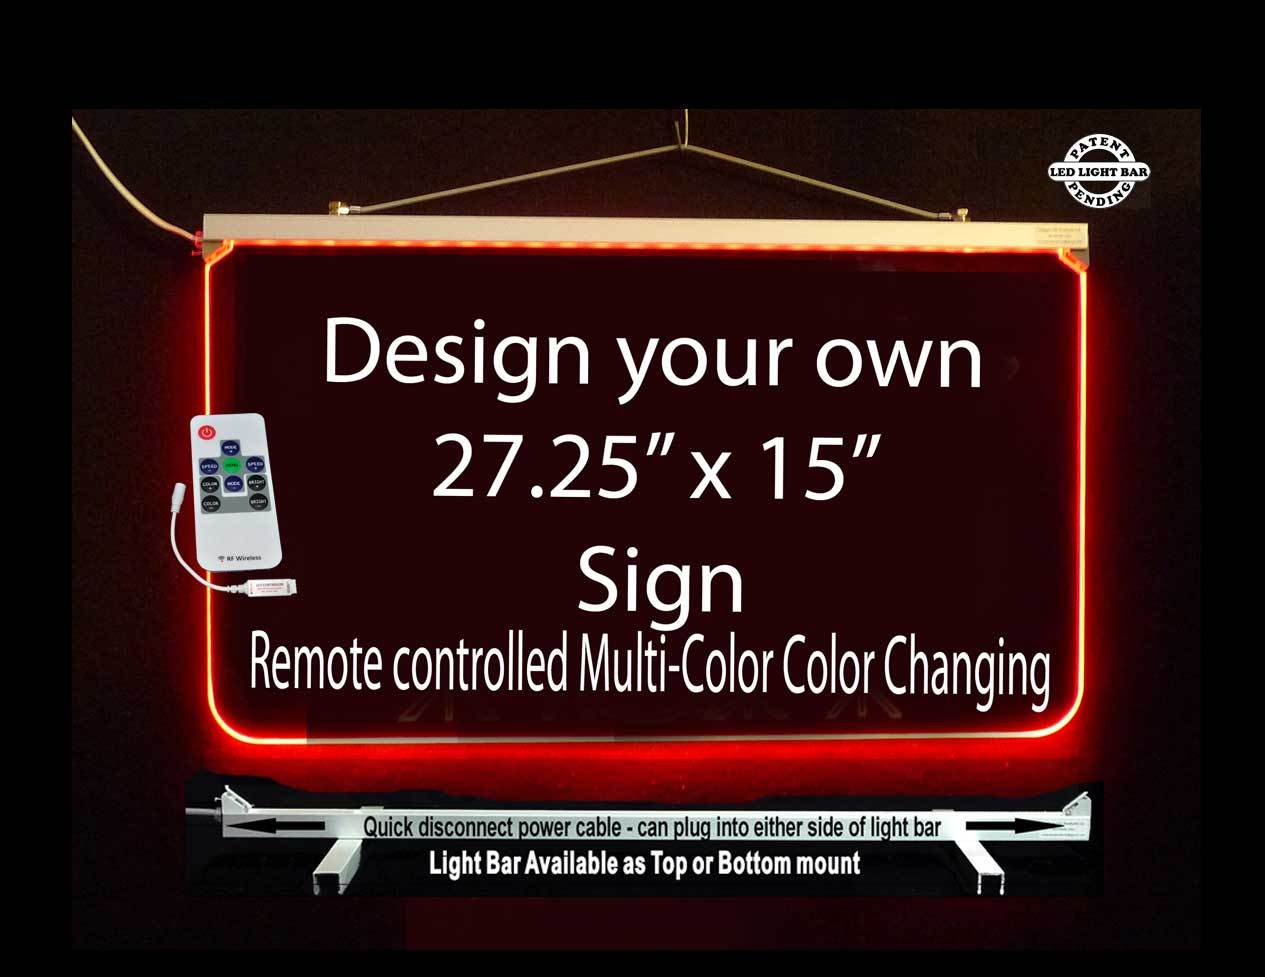 "Primary image for Personalized LED Sign-Design your own Sign,  Multi-Color Changing 27.25"" x 15"""